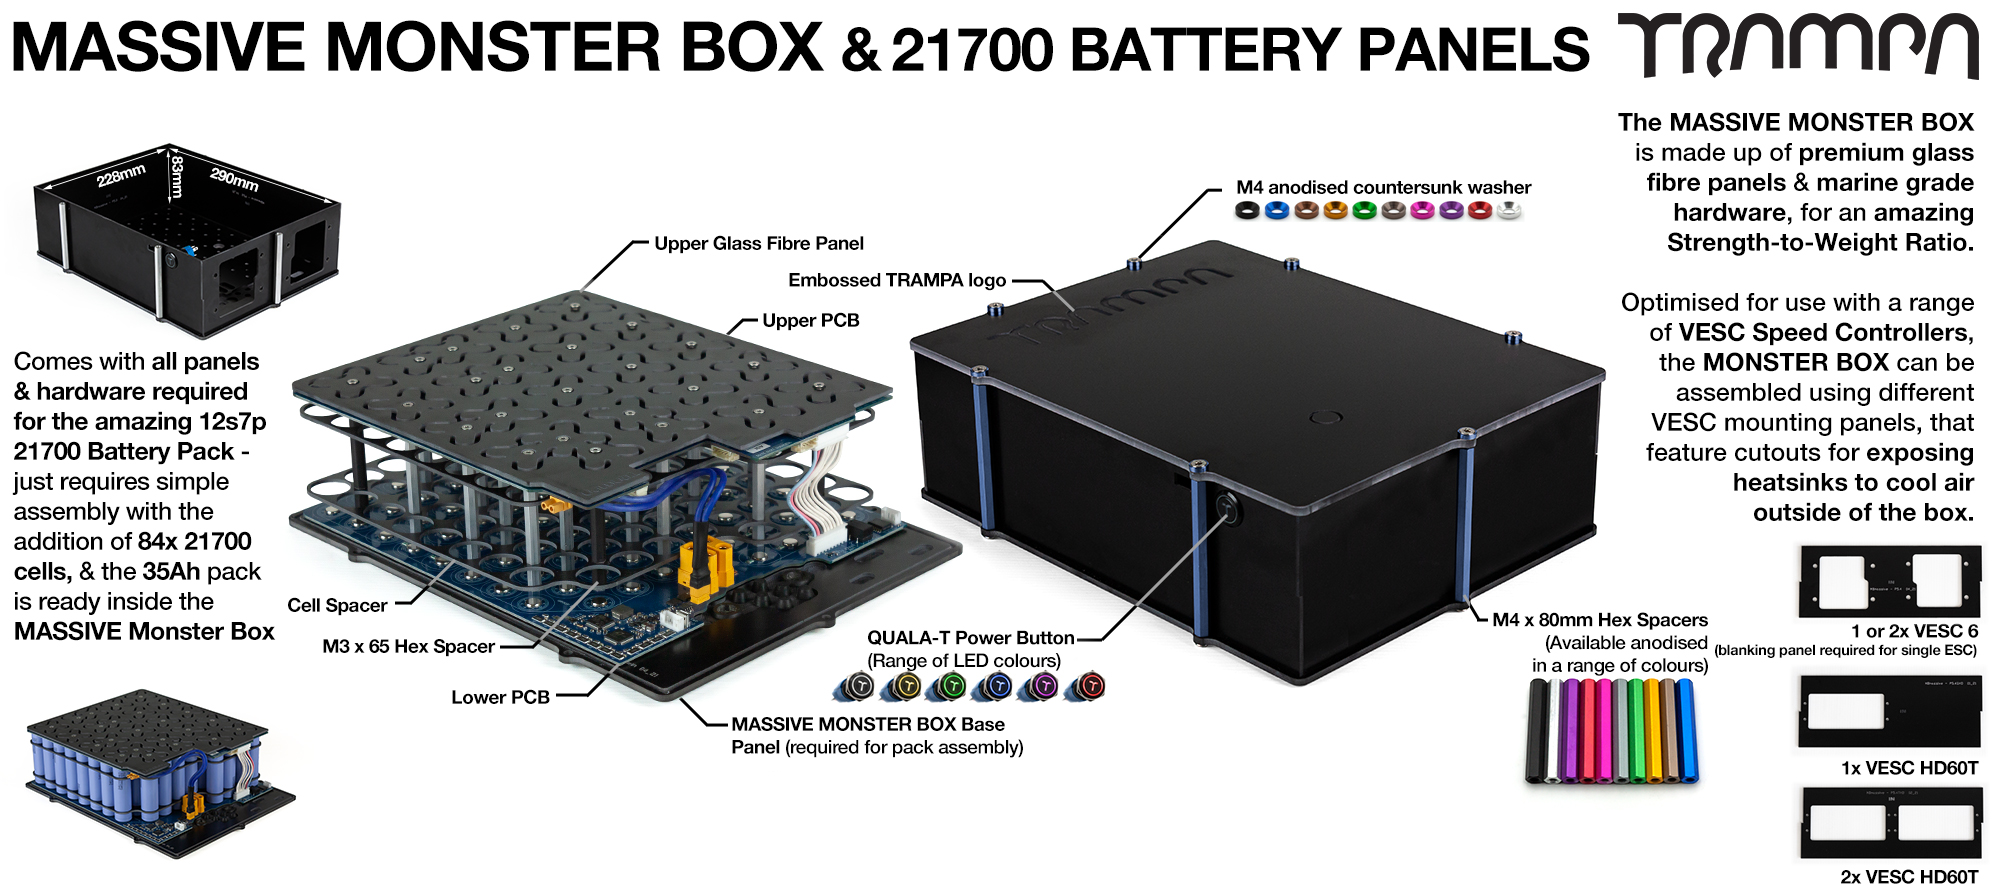 21700 MASSIVE MONSTER Box with 21700 PCB Pack - NO VESC & NO CELLS